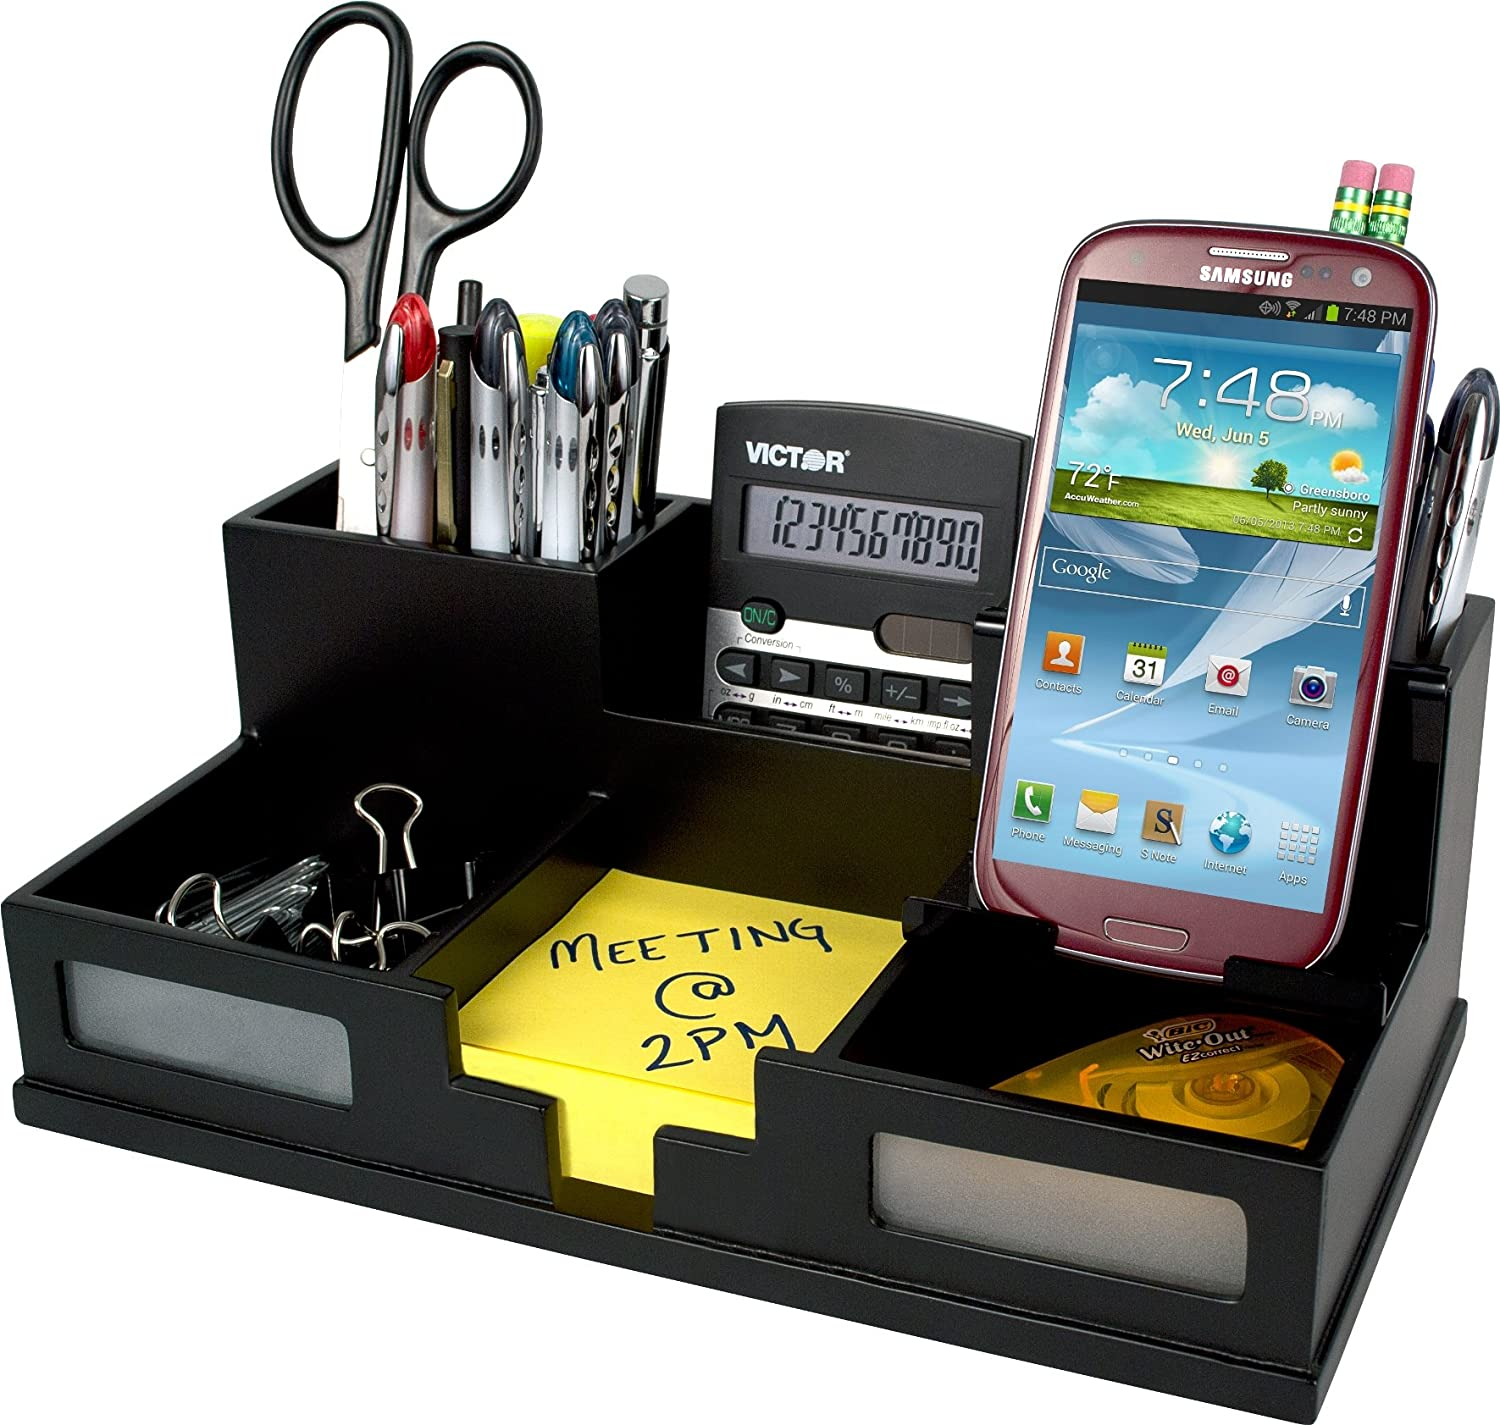 Victor Wood Desk Organizer with Smart Phone Holder, Midnight Black, 9525-5